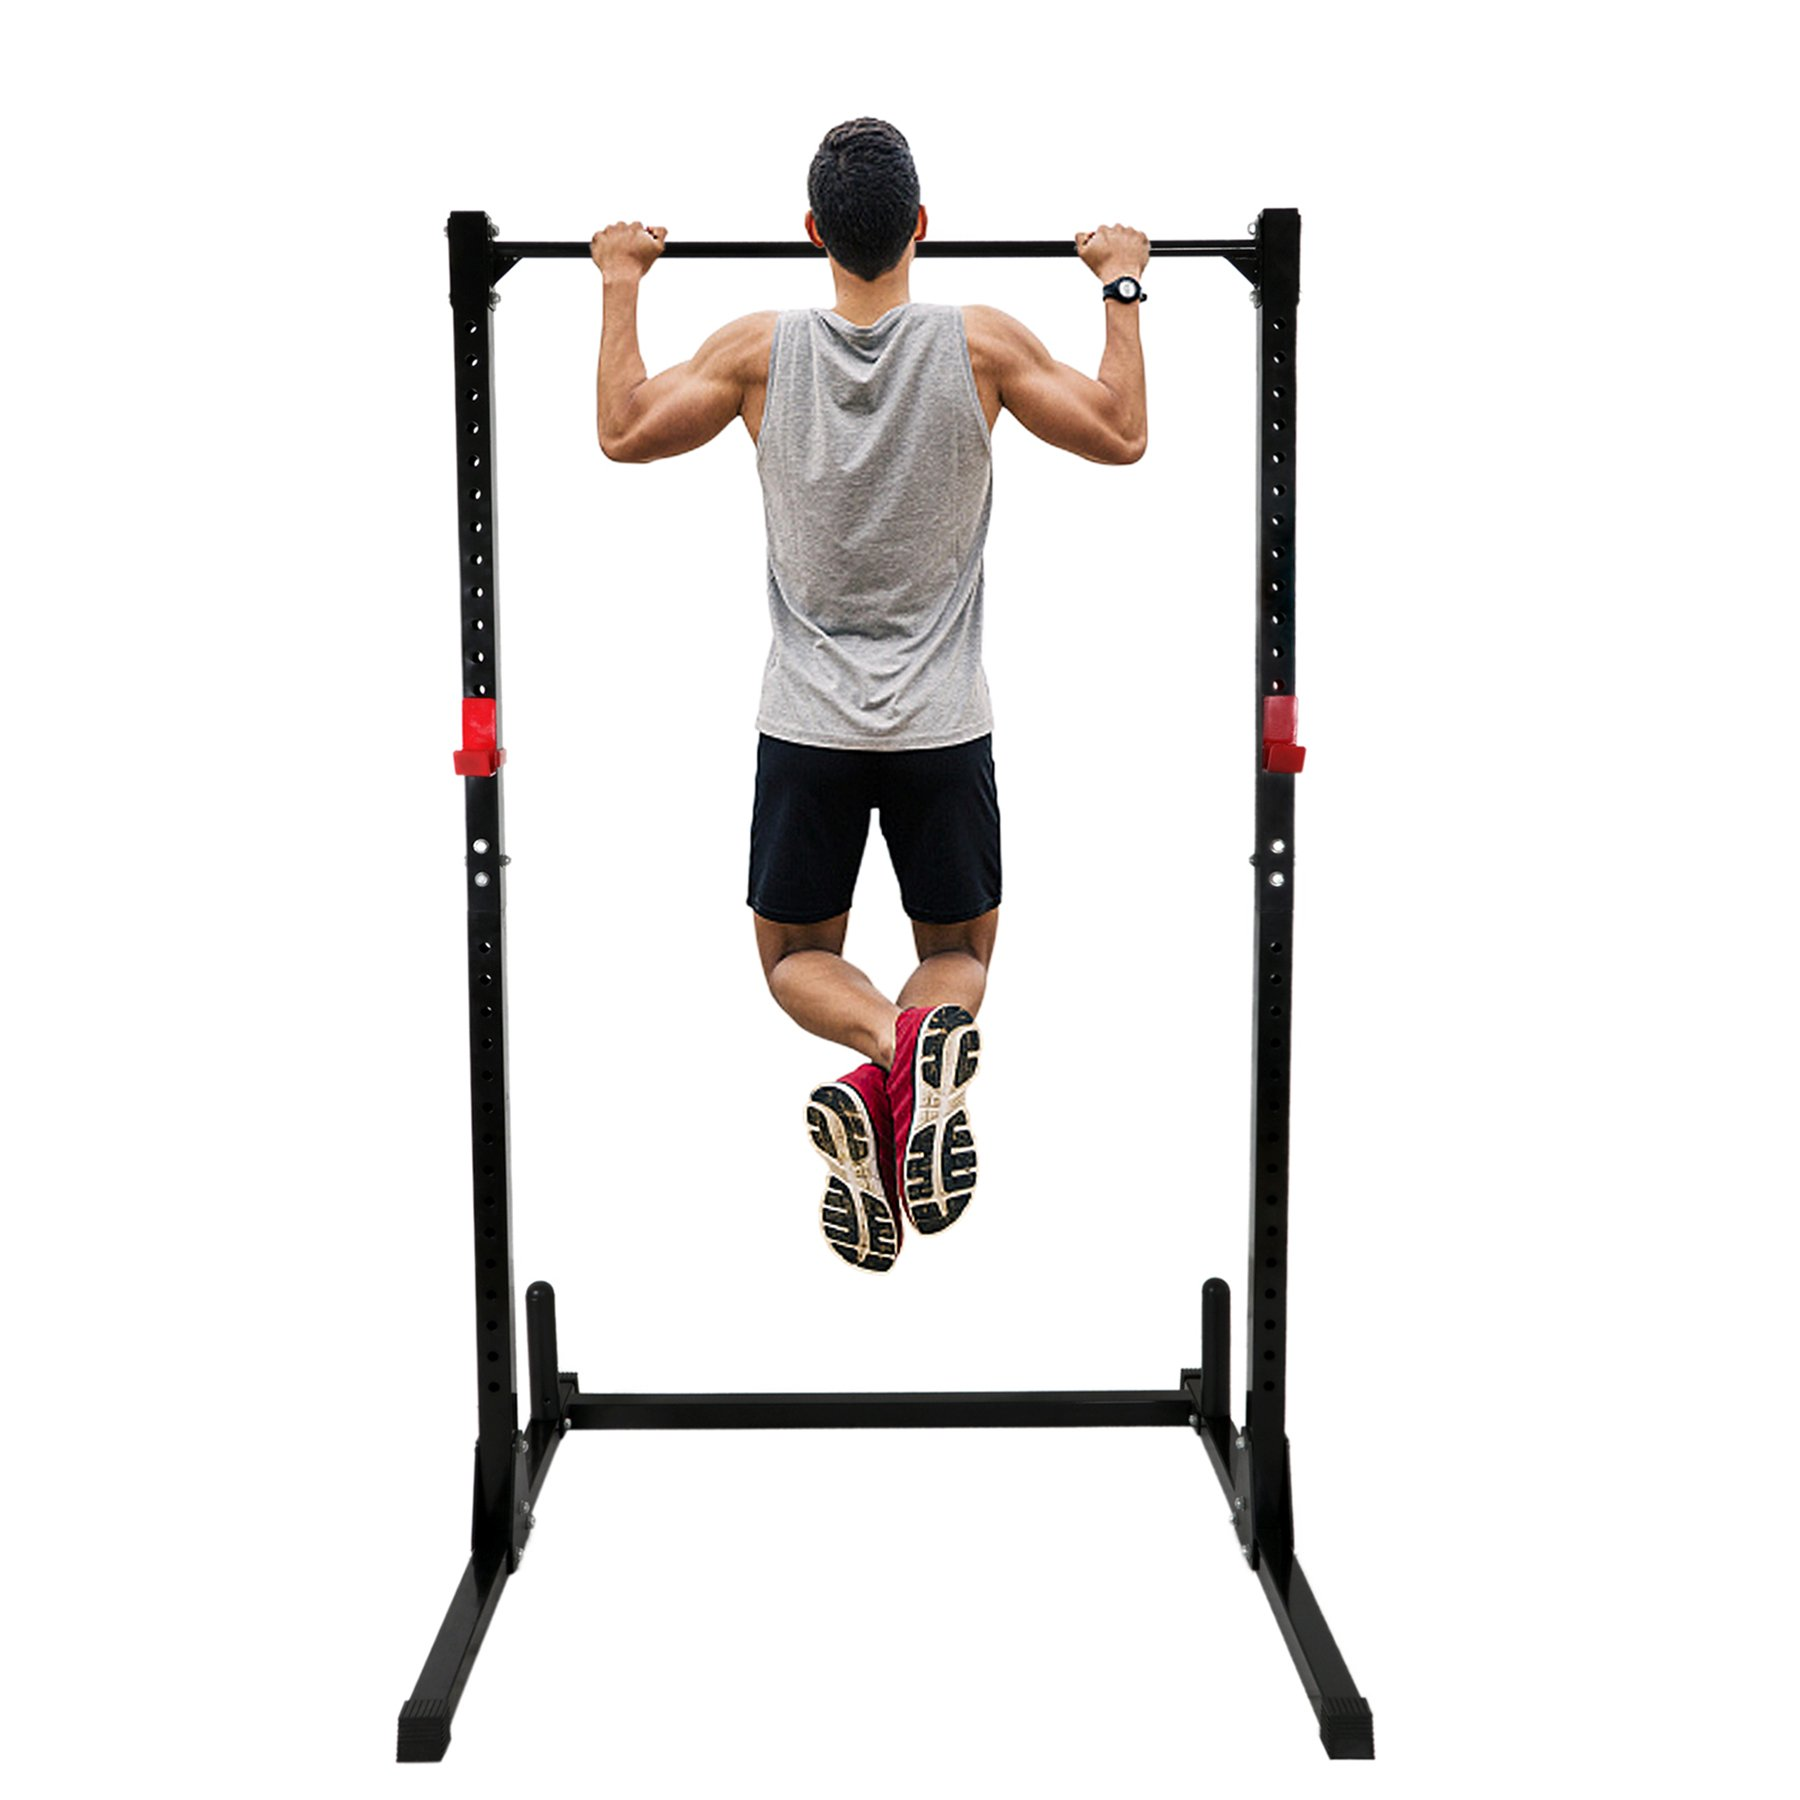 F2C Adjustable Height Power Squat Rack Cage Stand System Strength Deadlift Power Lifting Weightlifting Rack W/ Pull Up Bar Exercise Stand Squat Rack Bench Curl Weight Stand by F2C